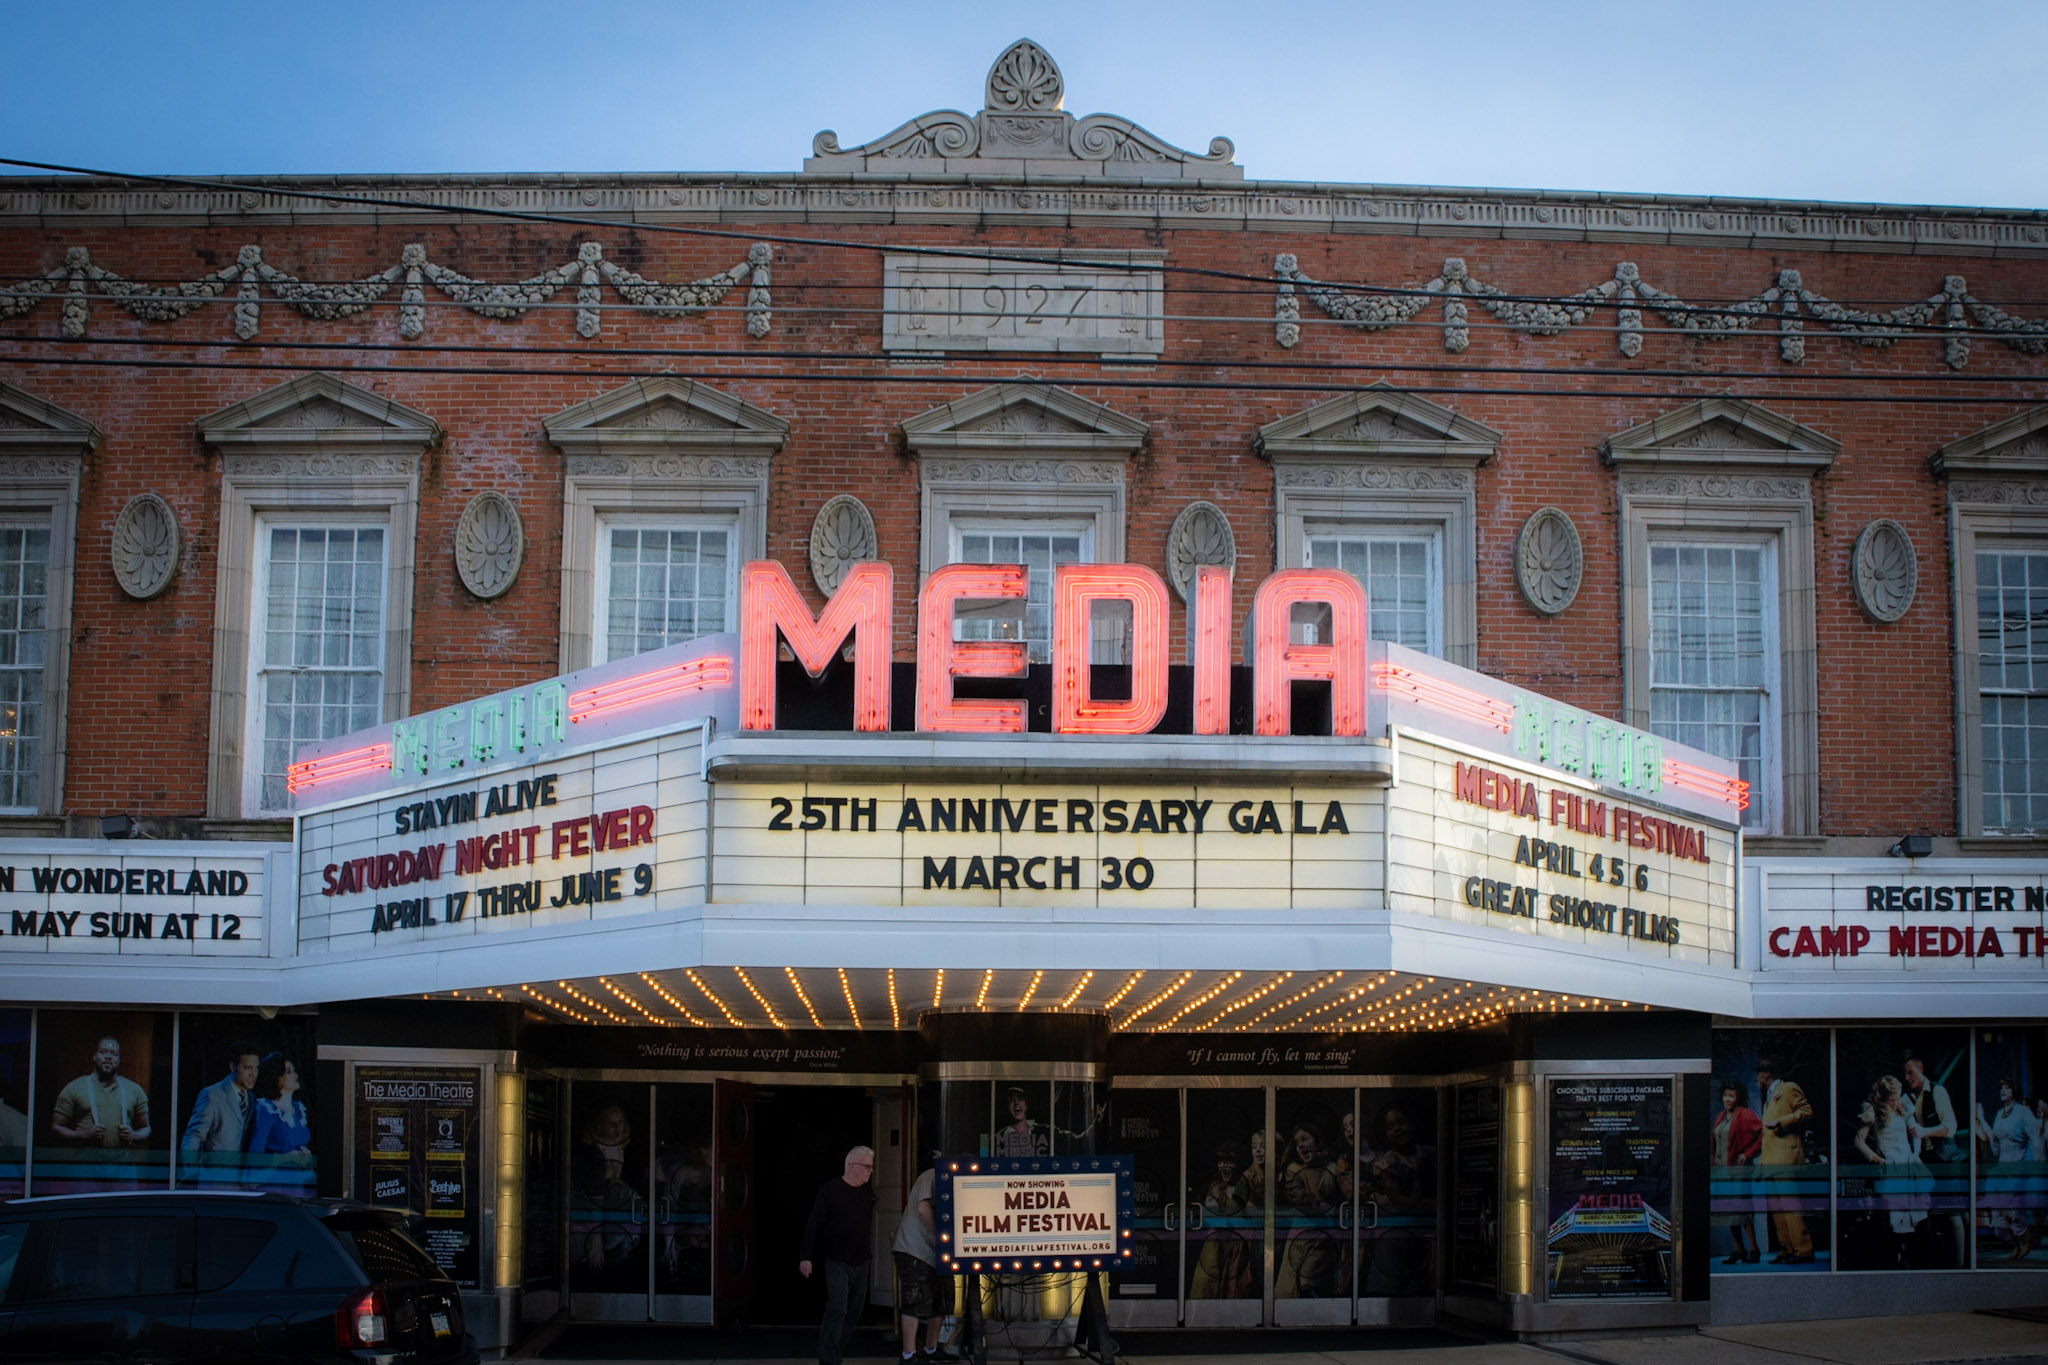 Photo courtesy of the Media Film Festival